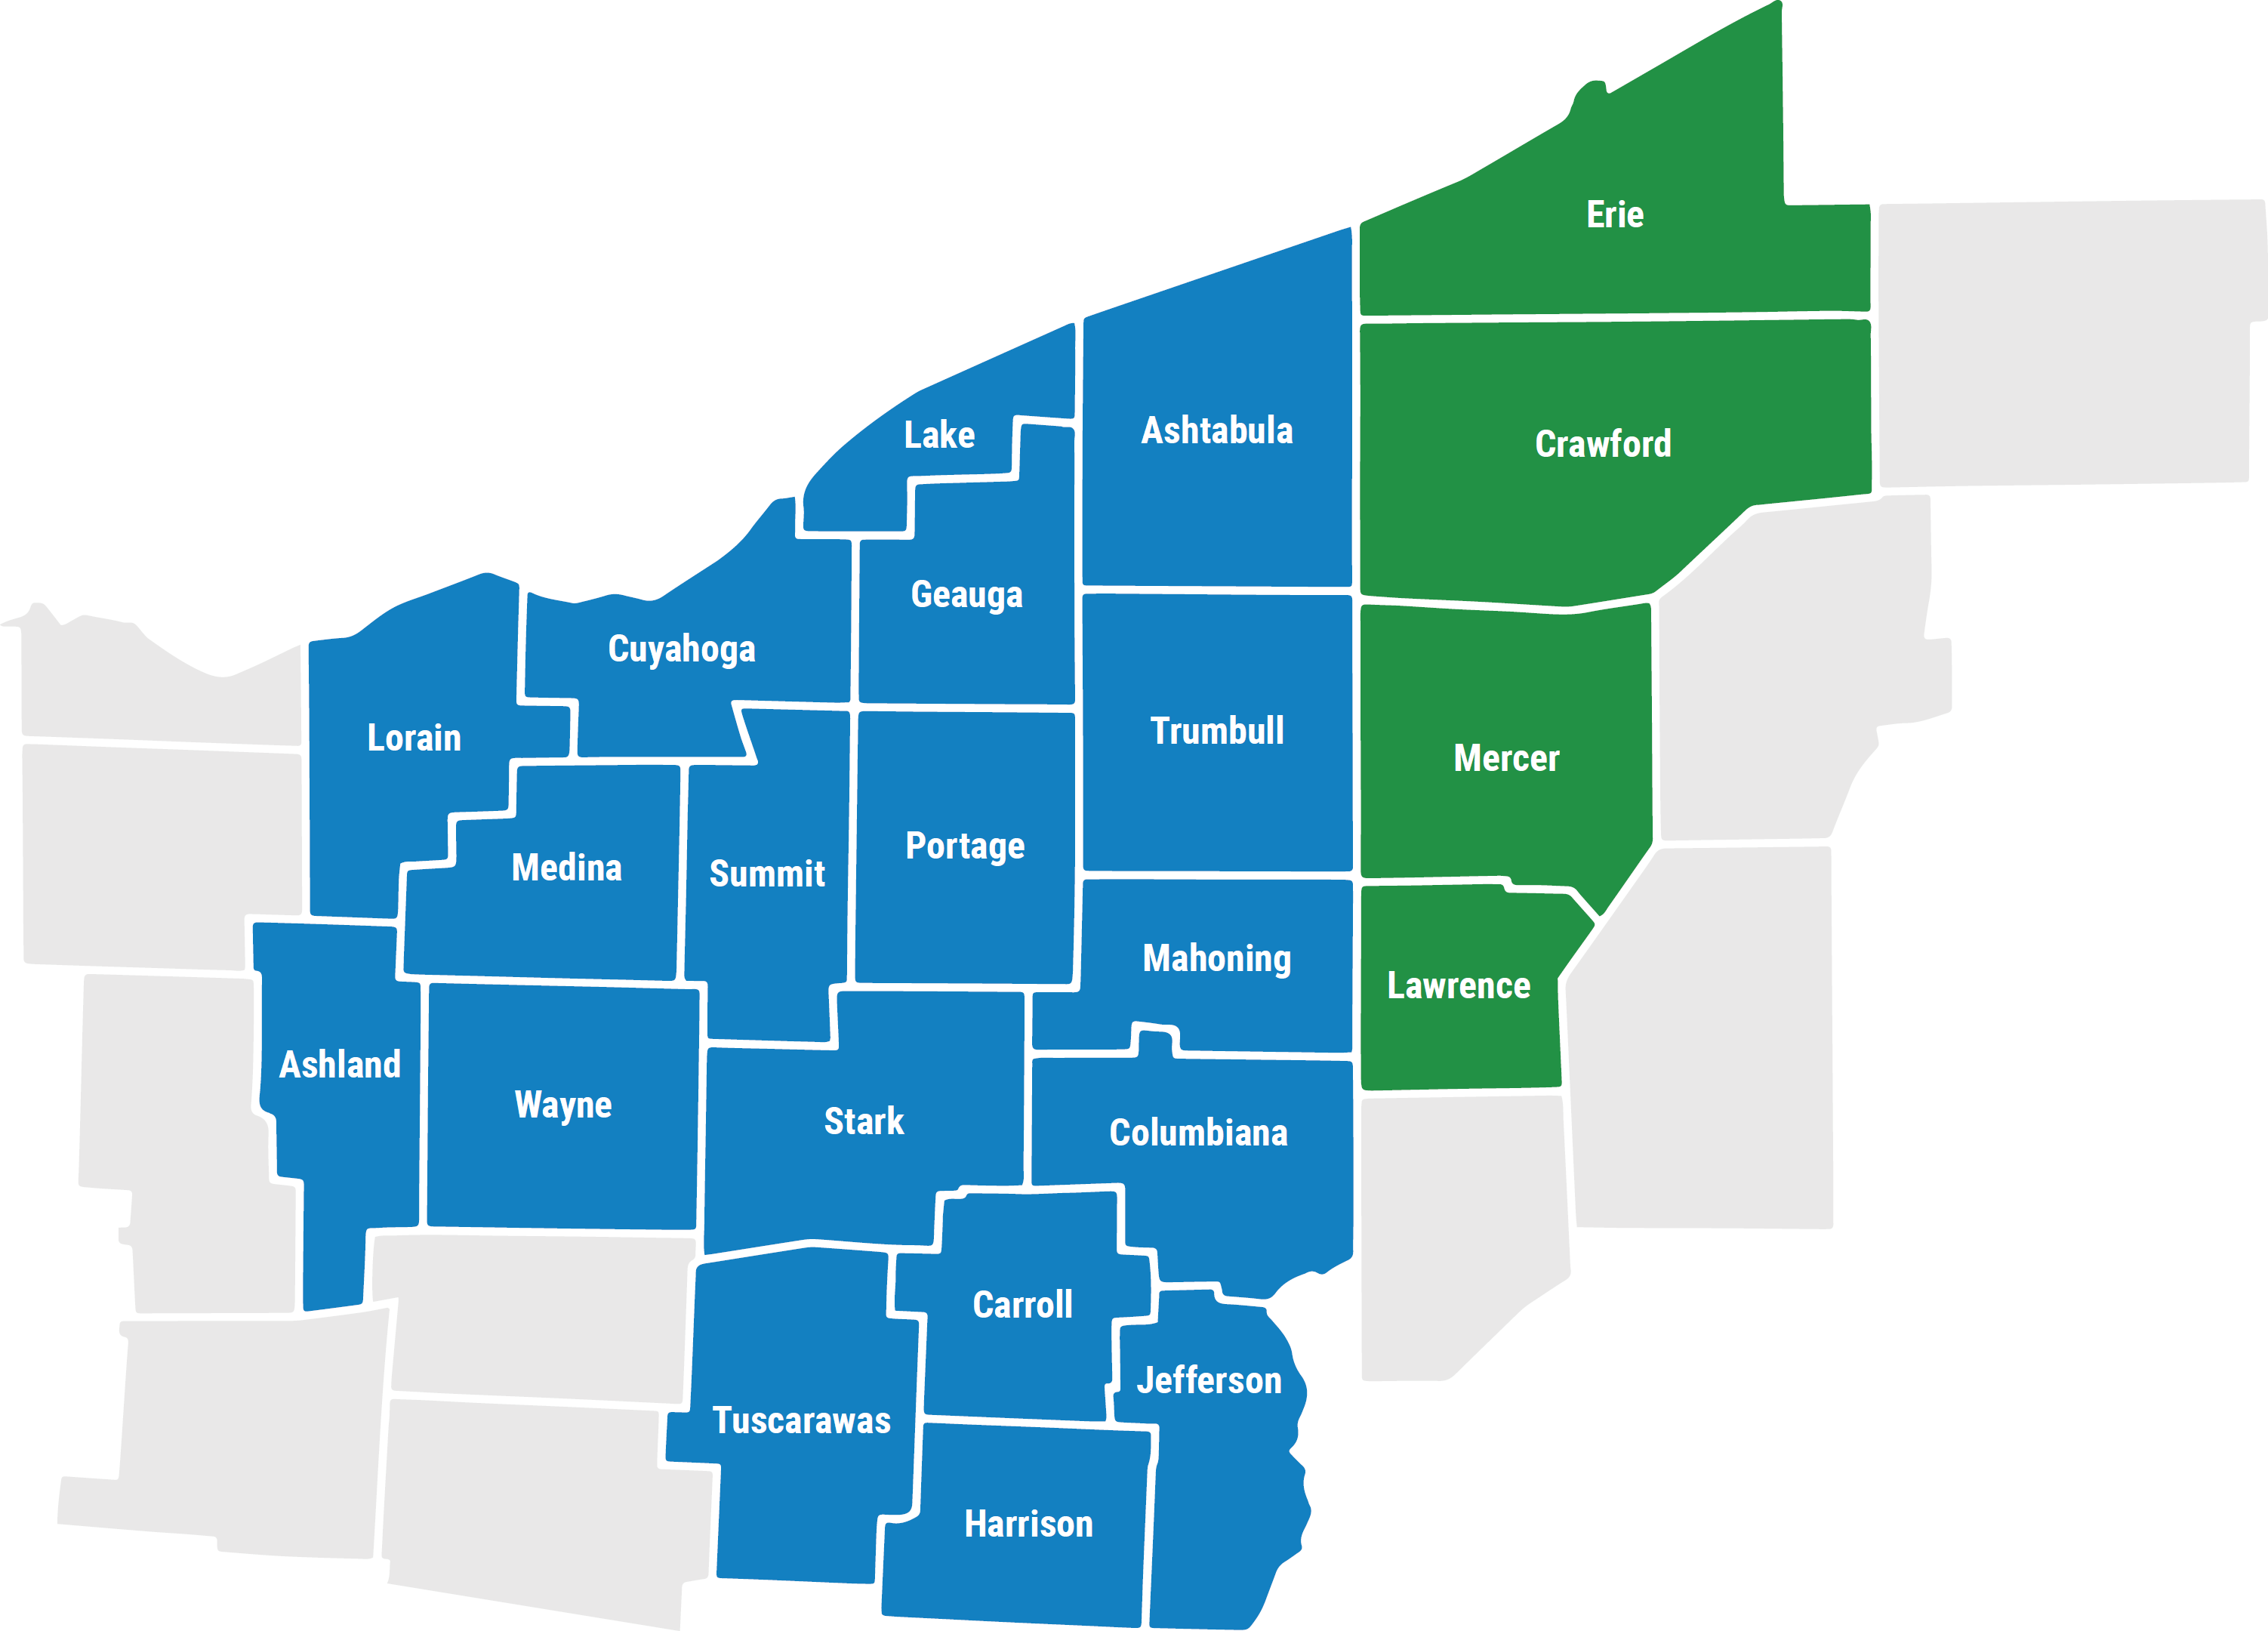 Service area includes Northeast Ohio, Lorain, Ashland, Cuyahoga, Medina, Wayne, Summit, Lake, Geauga, Portage, Stark, Tuscarawas, Ashtabula, Trumbull, Mahoning, Columbiana, Carroll, Harrison, Jefferson Counties and Western Pennsylvania, Erie, Crawford, Mercer, Lawrence Counties